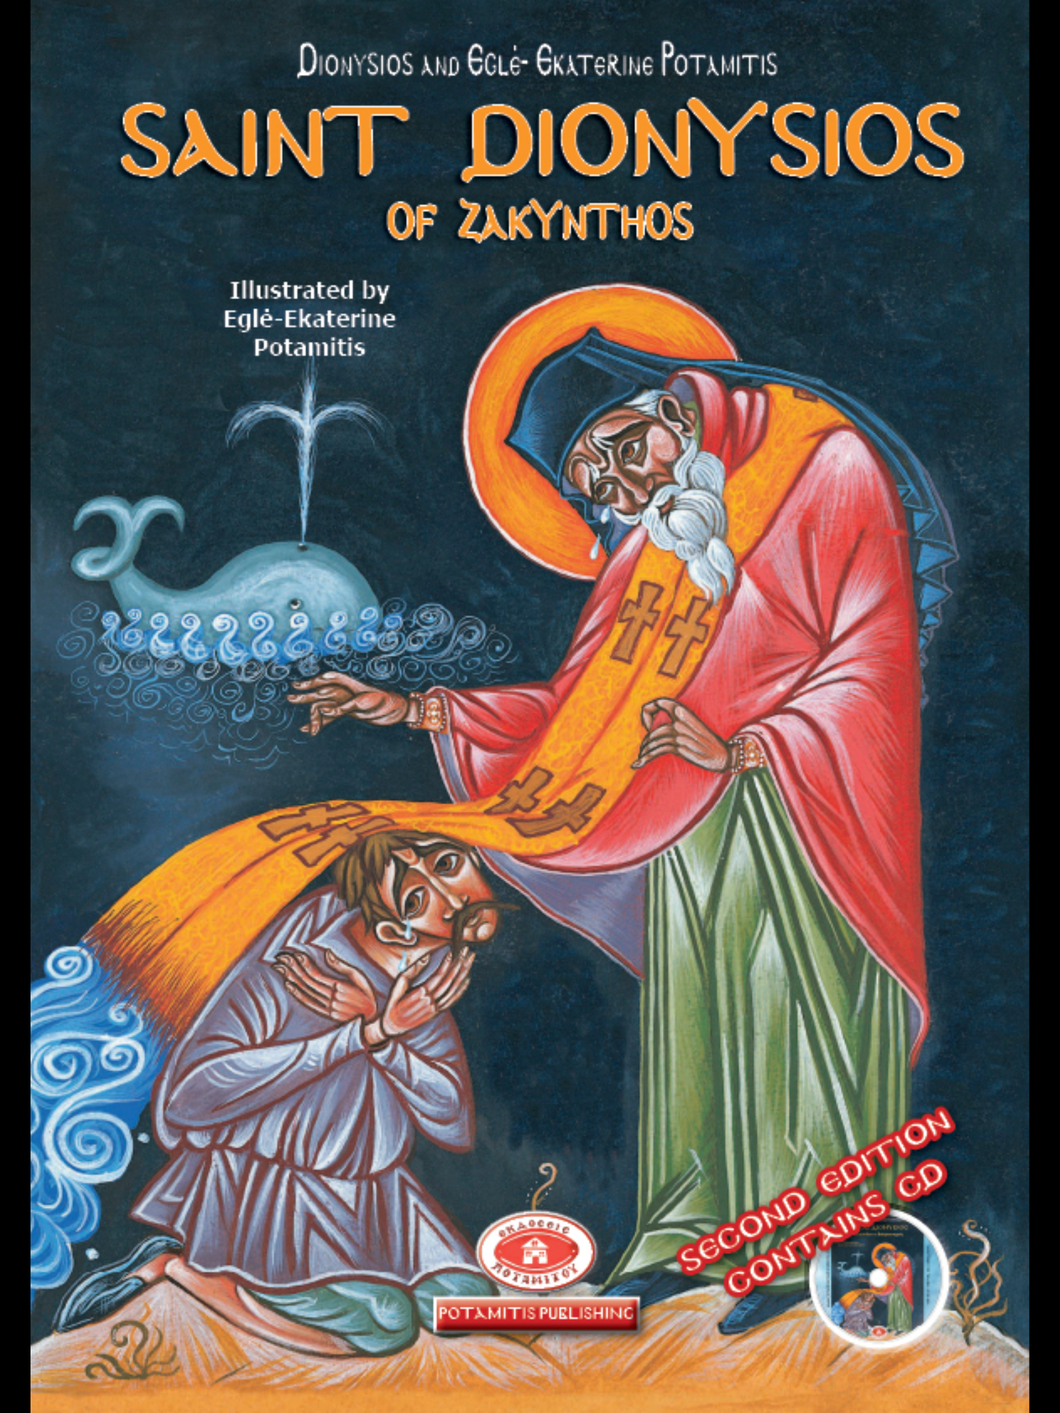 Hardcover #1 - Saint Dionysios of Zakynthos, includes CD